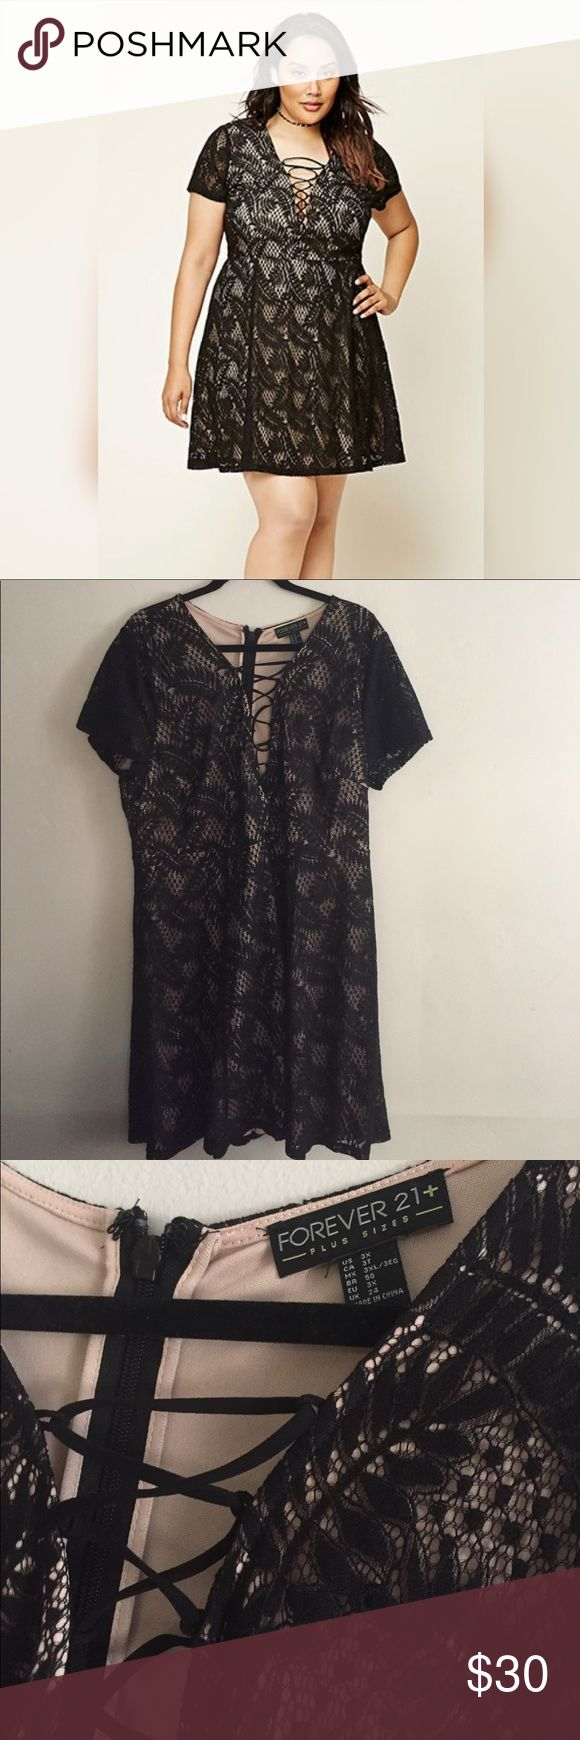 Black lace up plus size dress Nude lining black lace up skater dress. Only worn once for a few hours to a bridal shower. •No Trades •No Holds •Bundle to save on price & shipping  •Offers only accepted through offer button  •Please ask any questions before purchasing  •Happy Poshing! Forever 21 Dresses